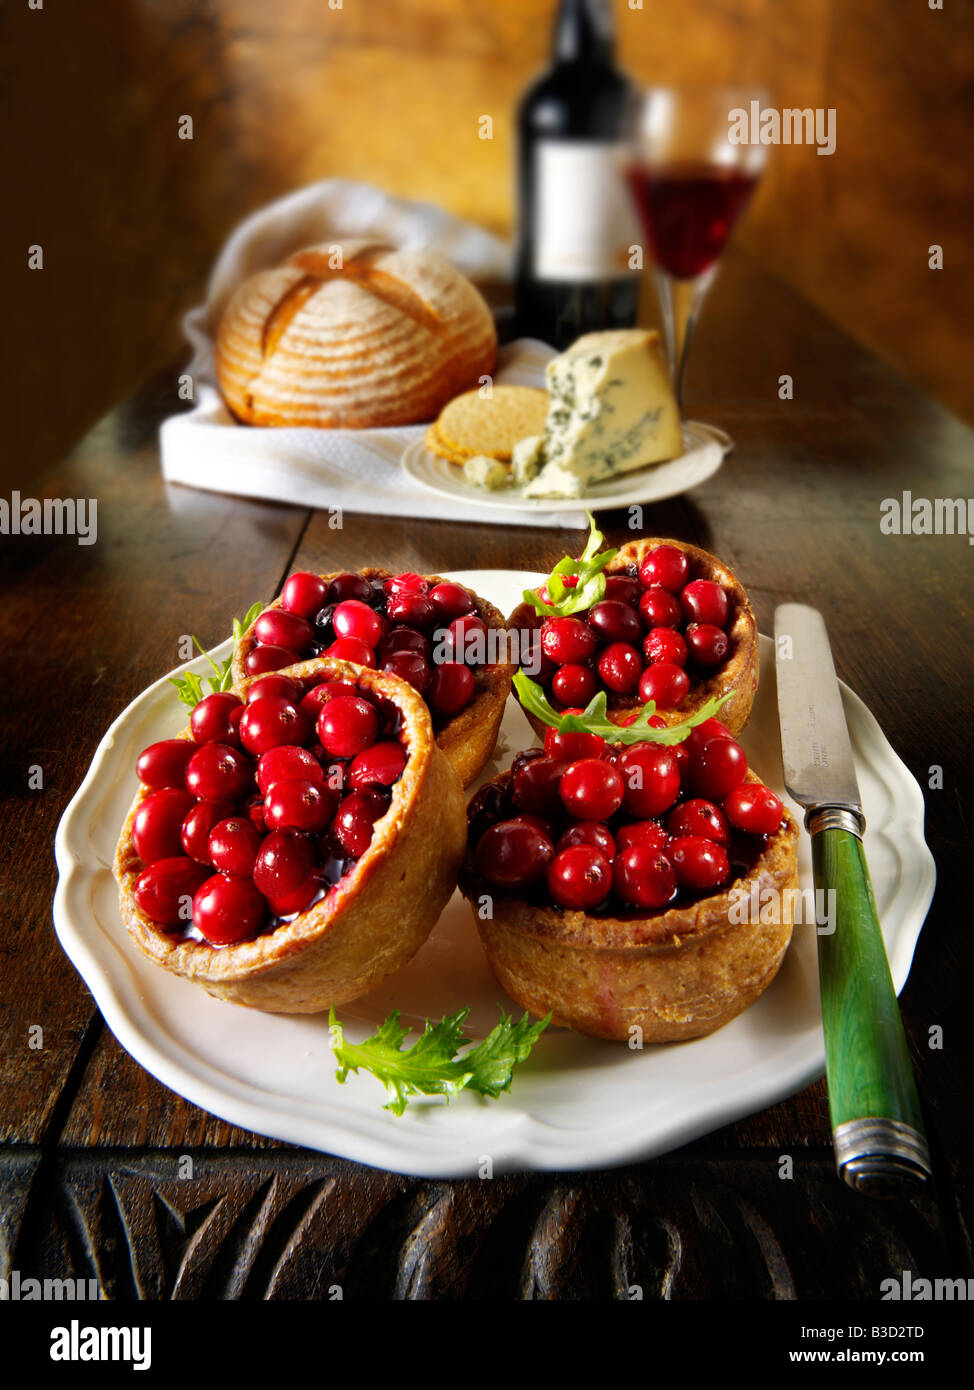 Cranberry topped pork pie - traditional British winter 'christmas food' - Stock Image